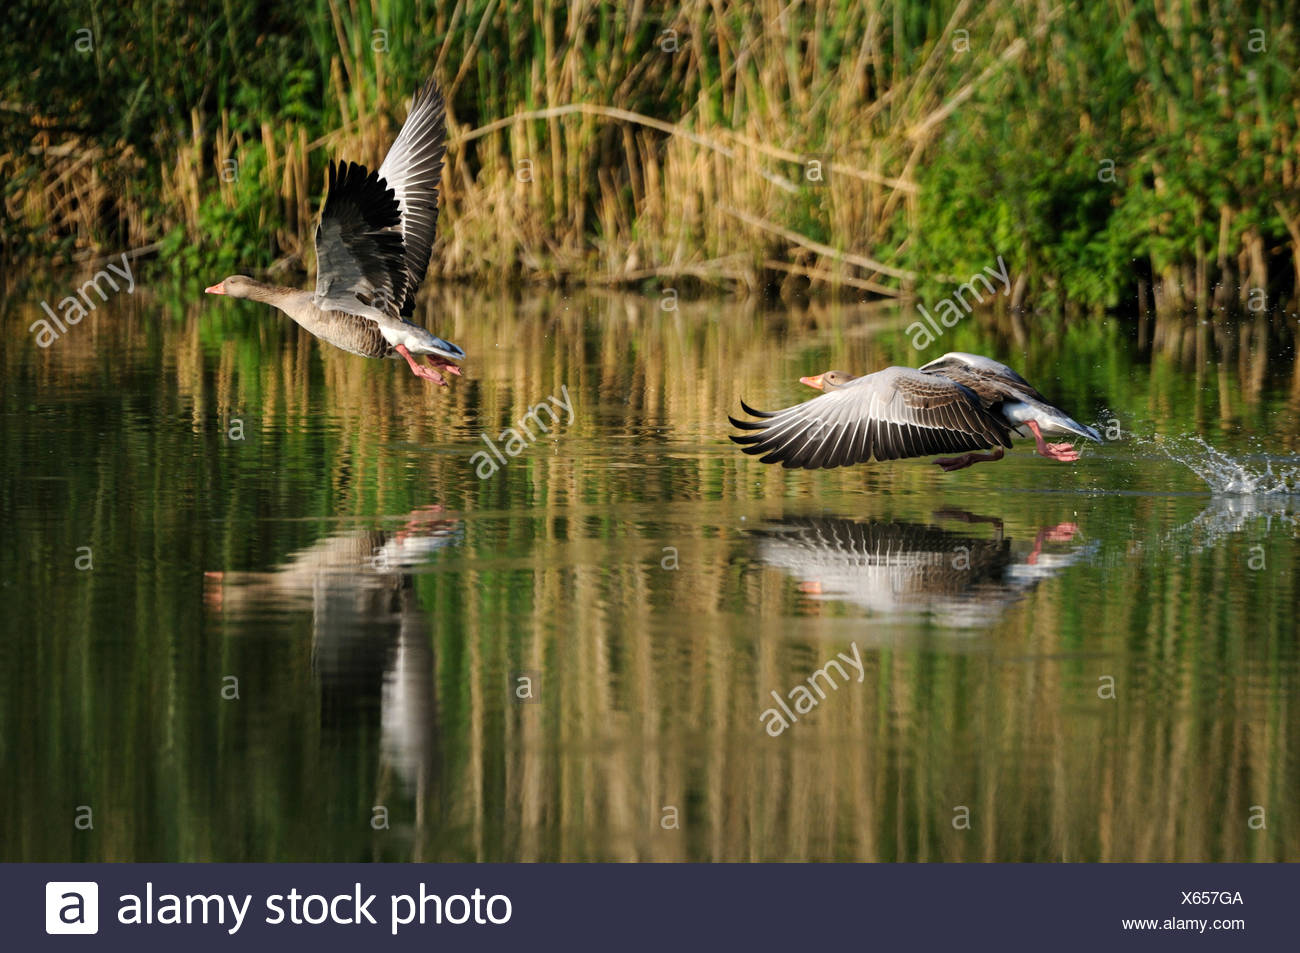 Greylag goose wild goose geese goose water bird water birds wild geese Anser anser greylag geese summers fly animal animals G - Stock Image